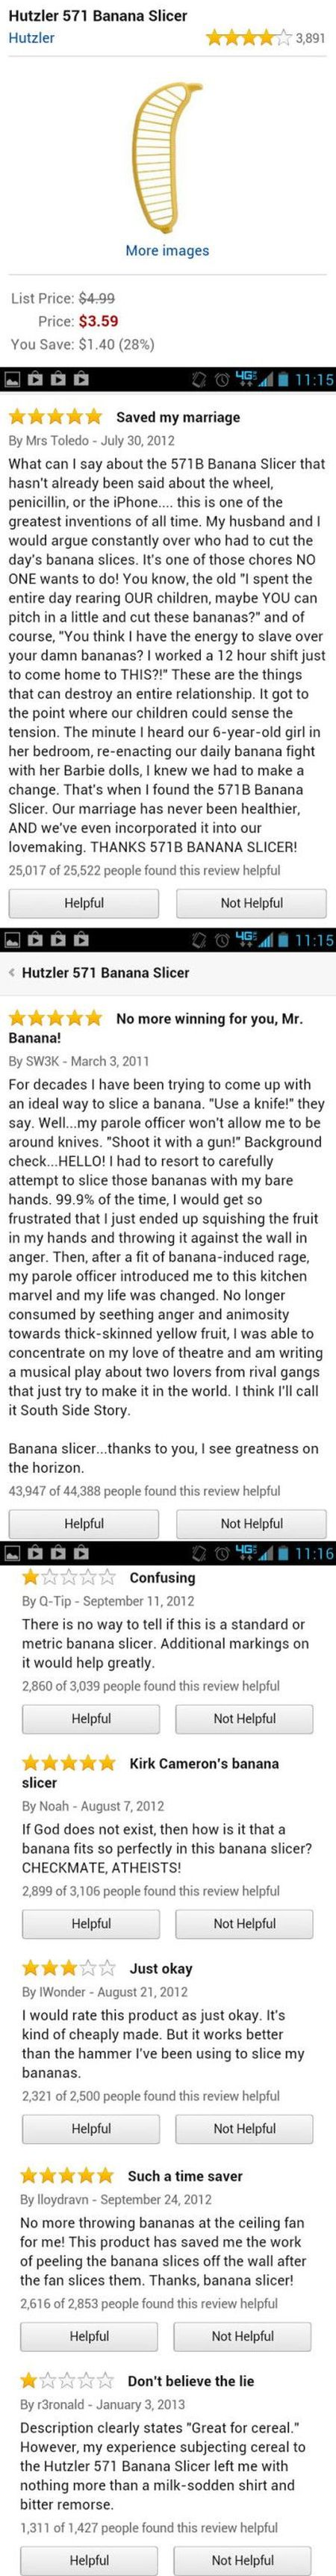 Who knew a banana slicer could be so complicated